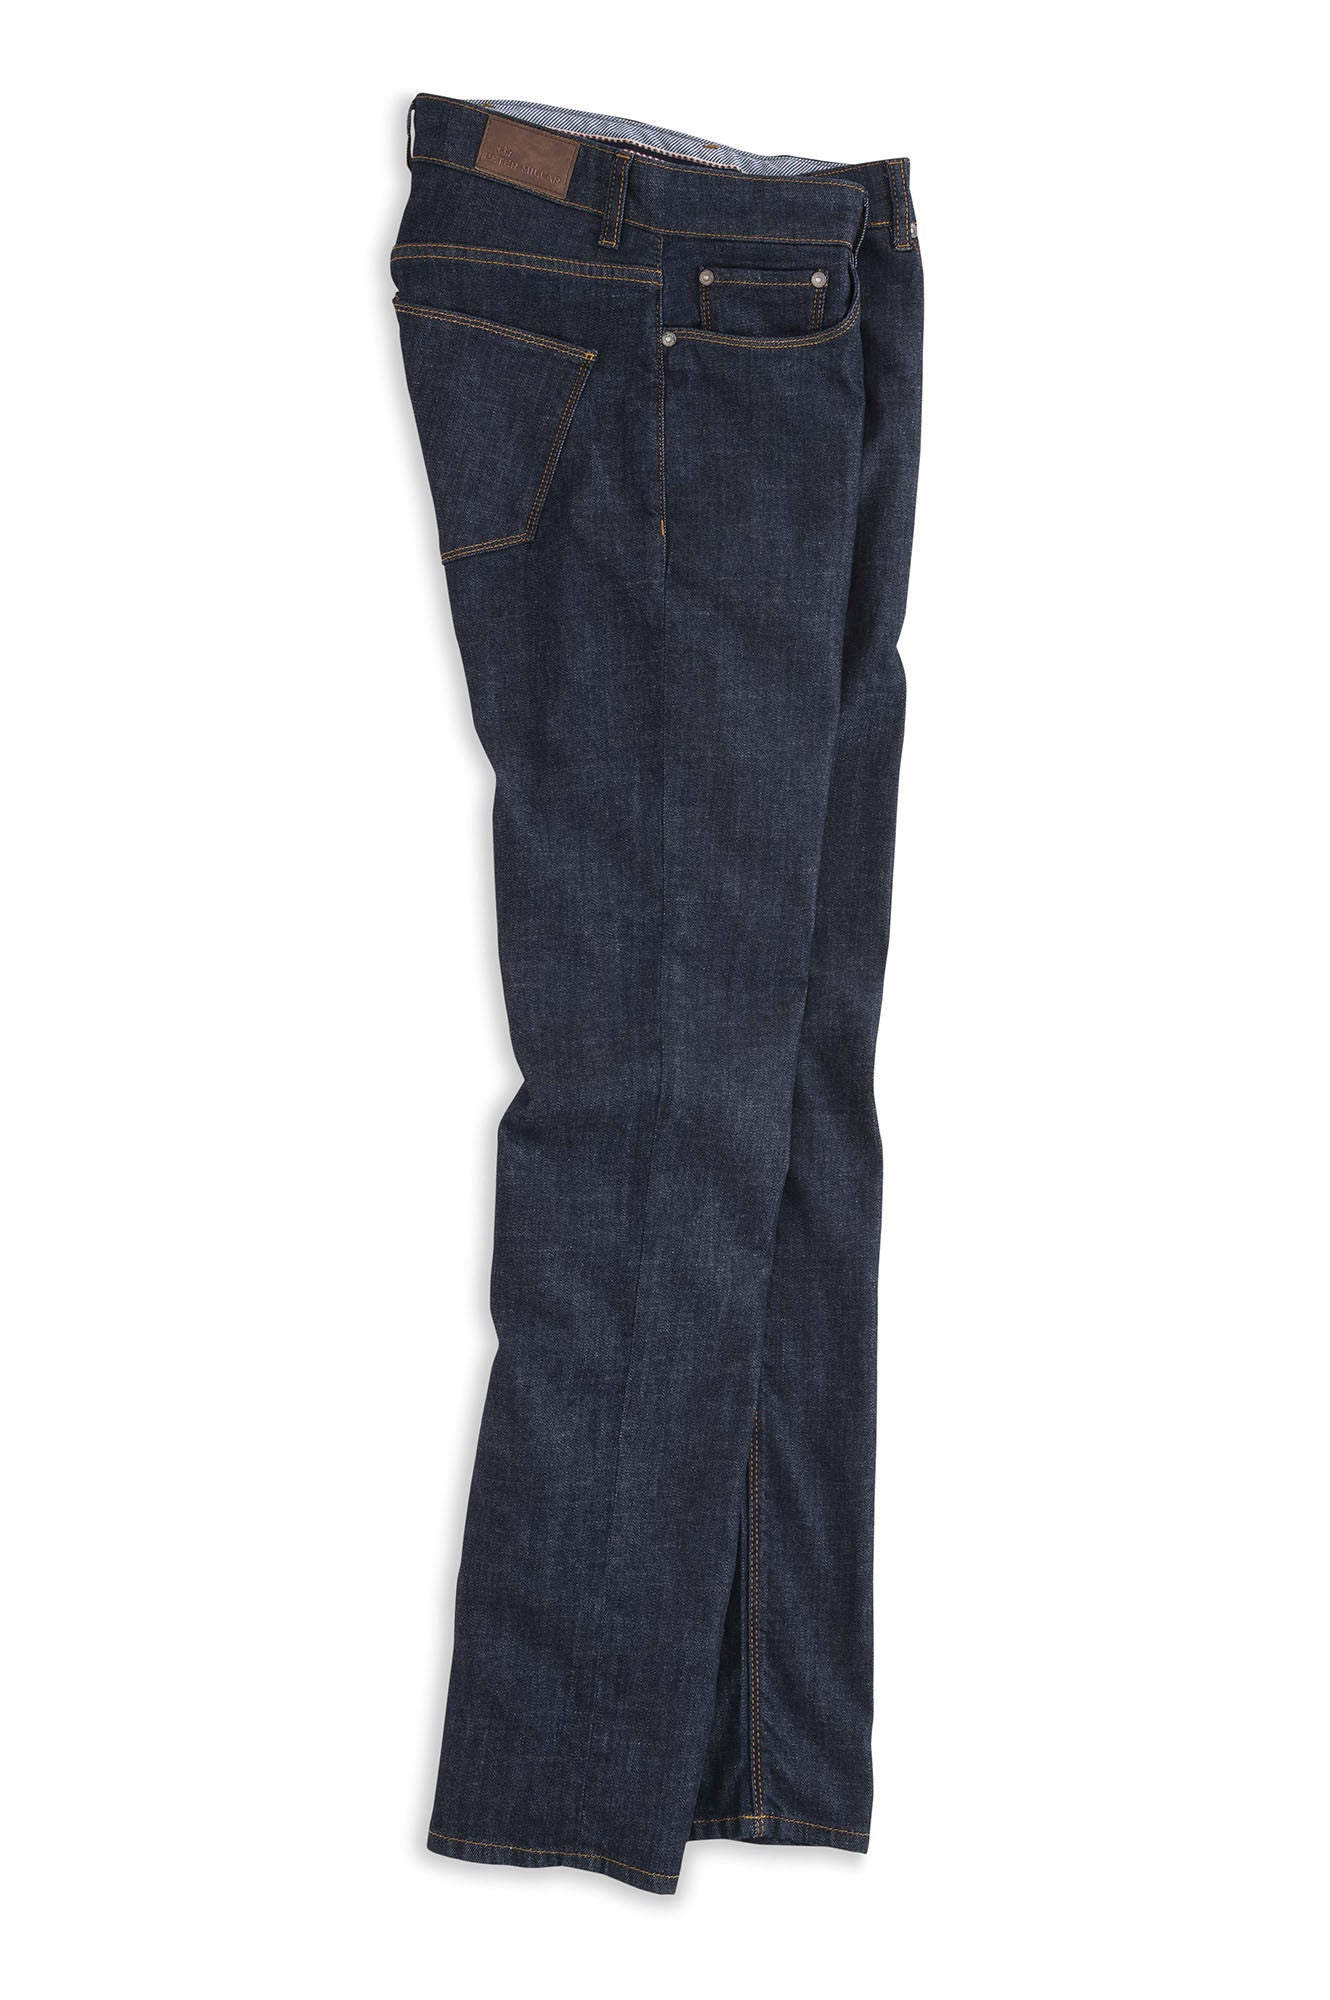 "THE JEAN 34"" INSEAM-INDIGO"